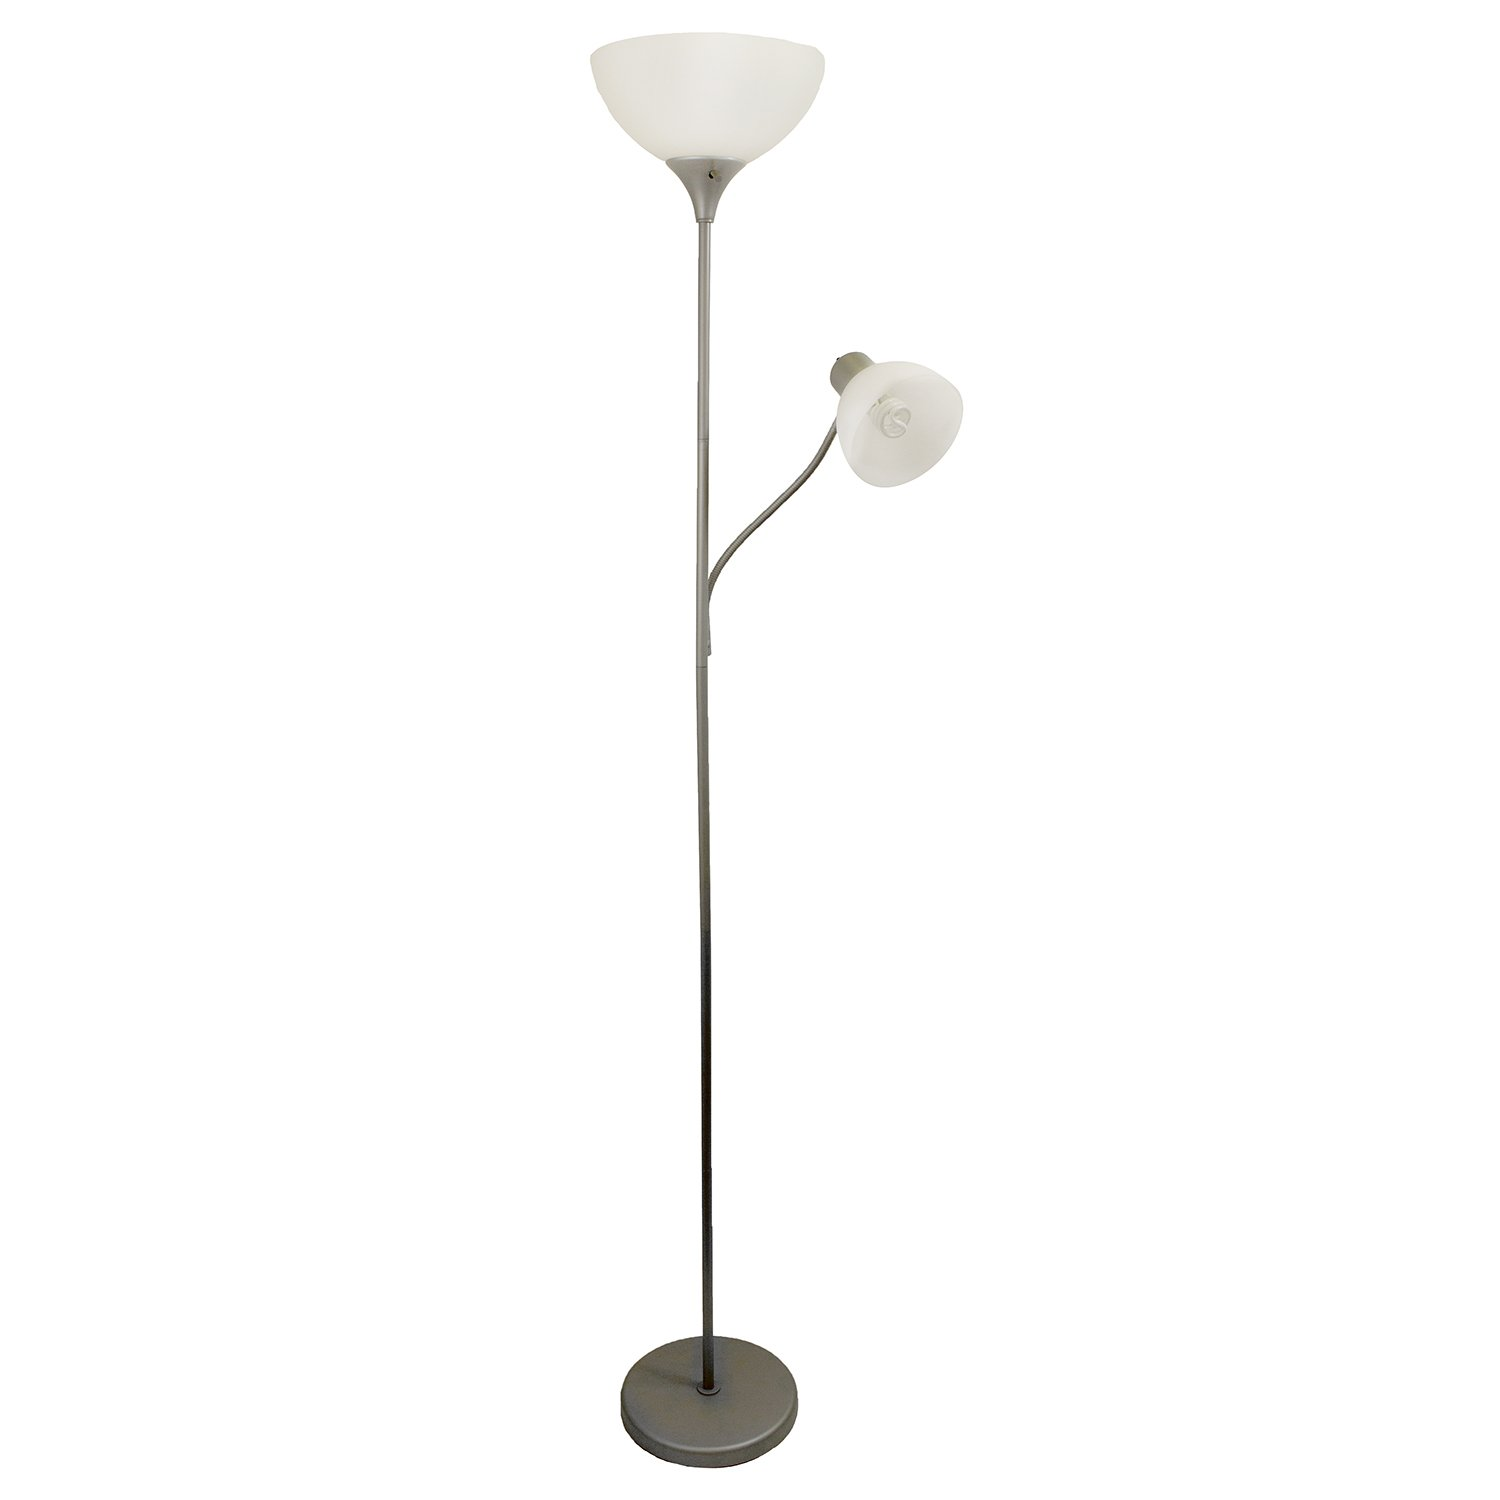 Simple Designs LF2000 SLV Floor Lamp with Reading Light Silver